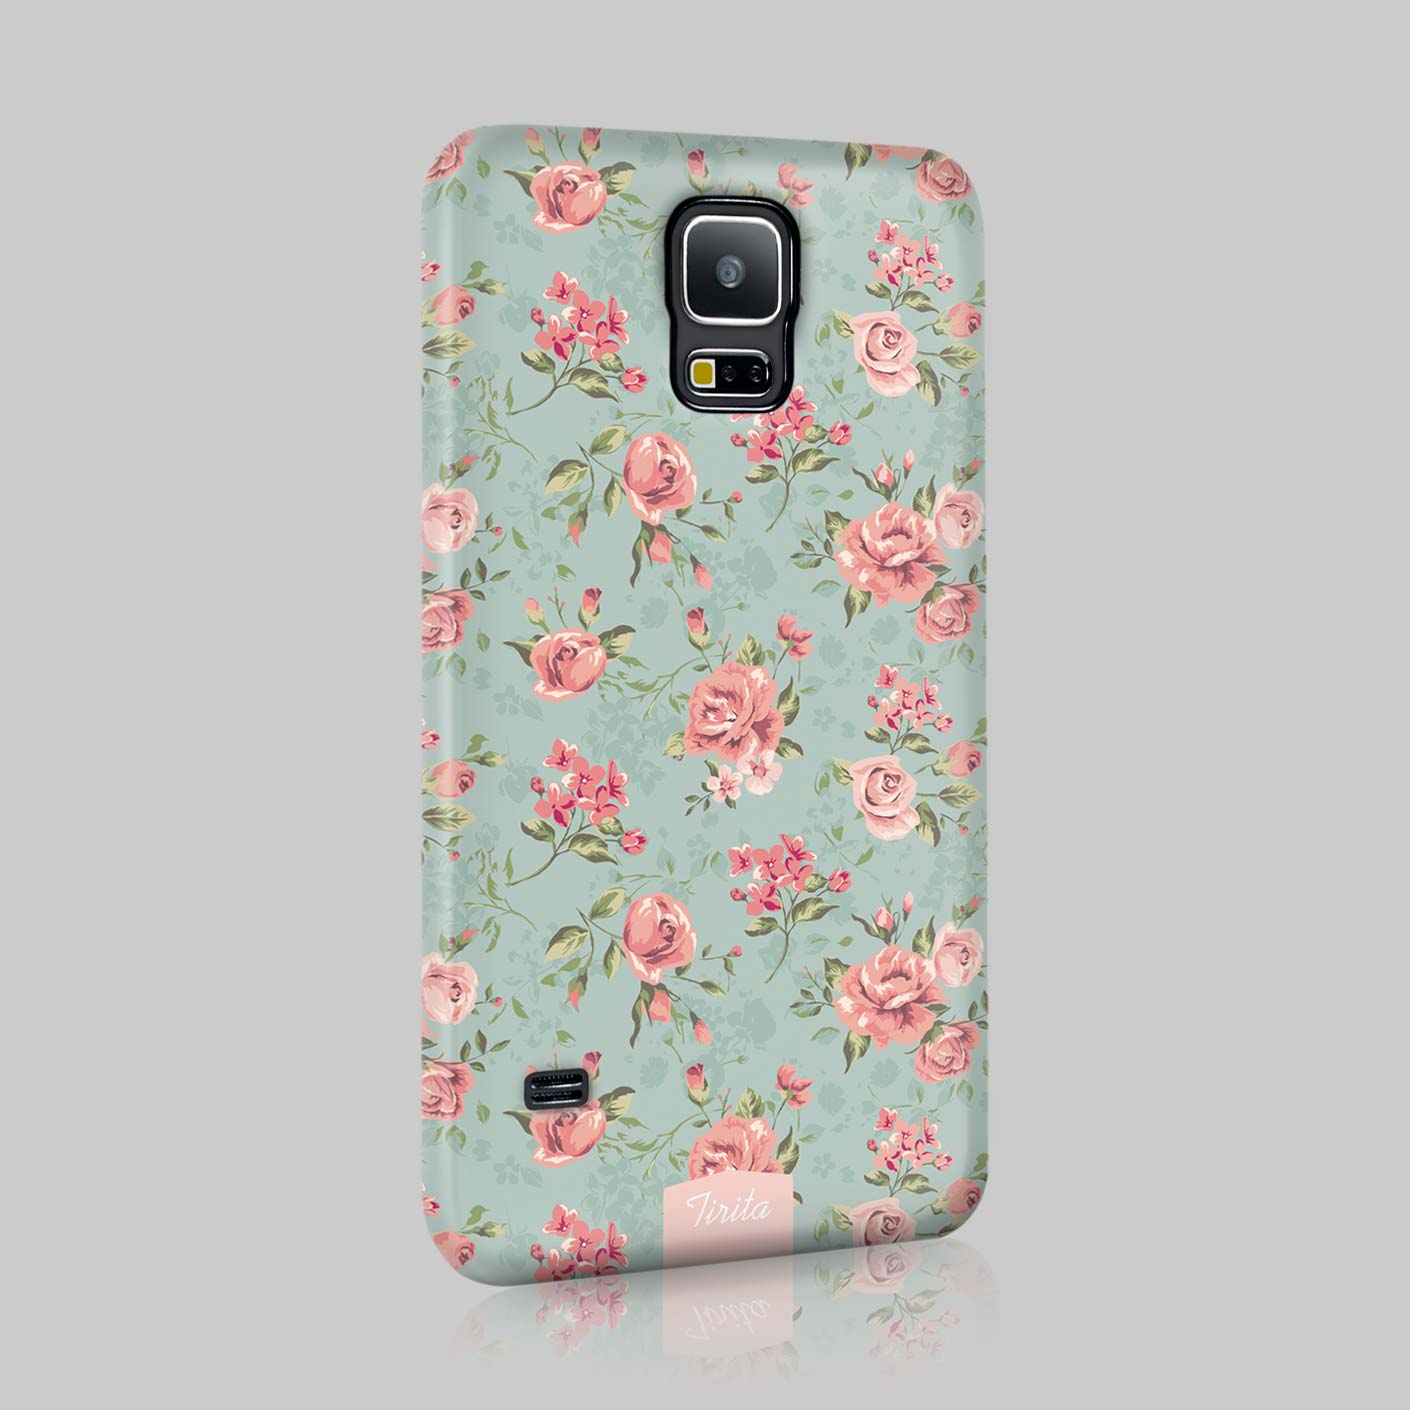 Tirita shabby chic floral retro phone case hard cover for for Case shabby chic country